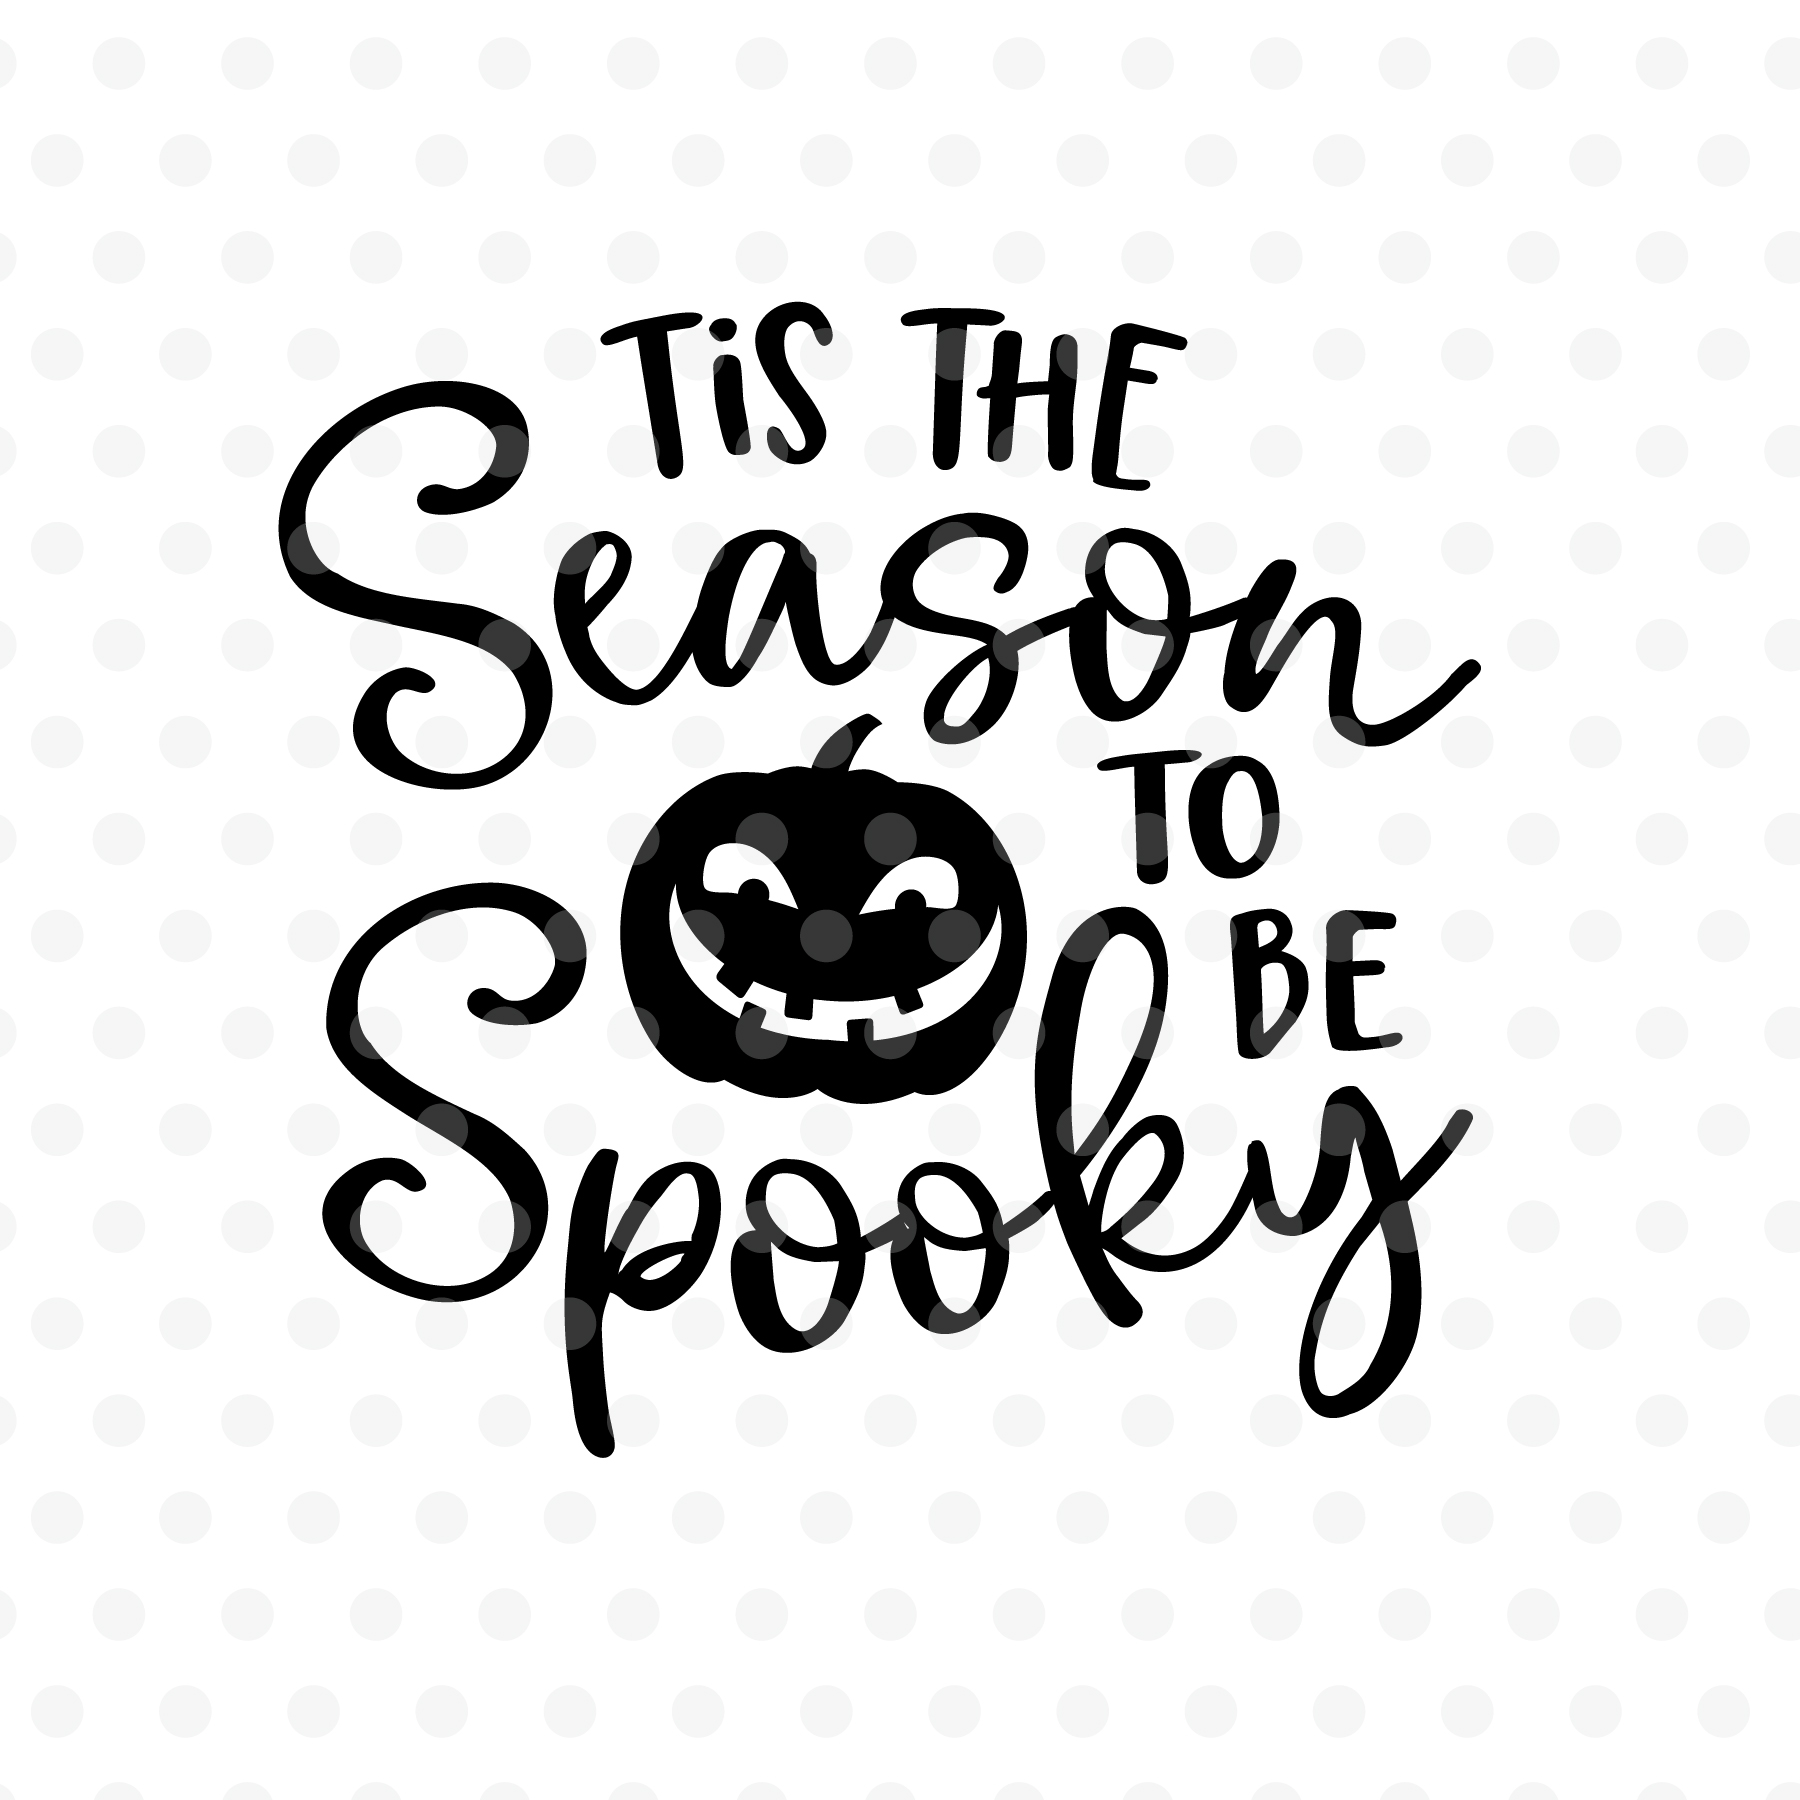 Tis The Season To Be Spooky Svg Eps Dxf